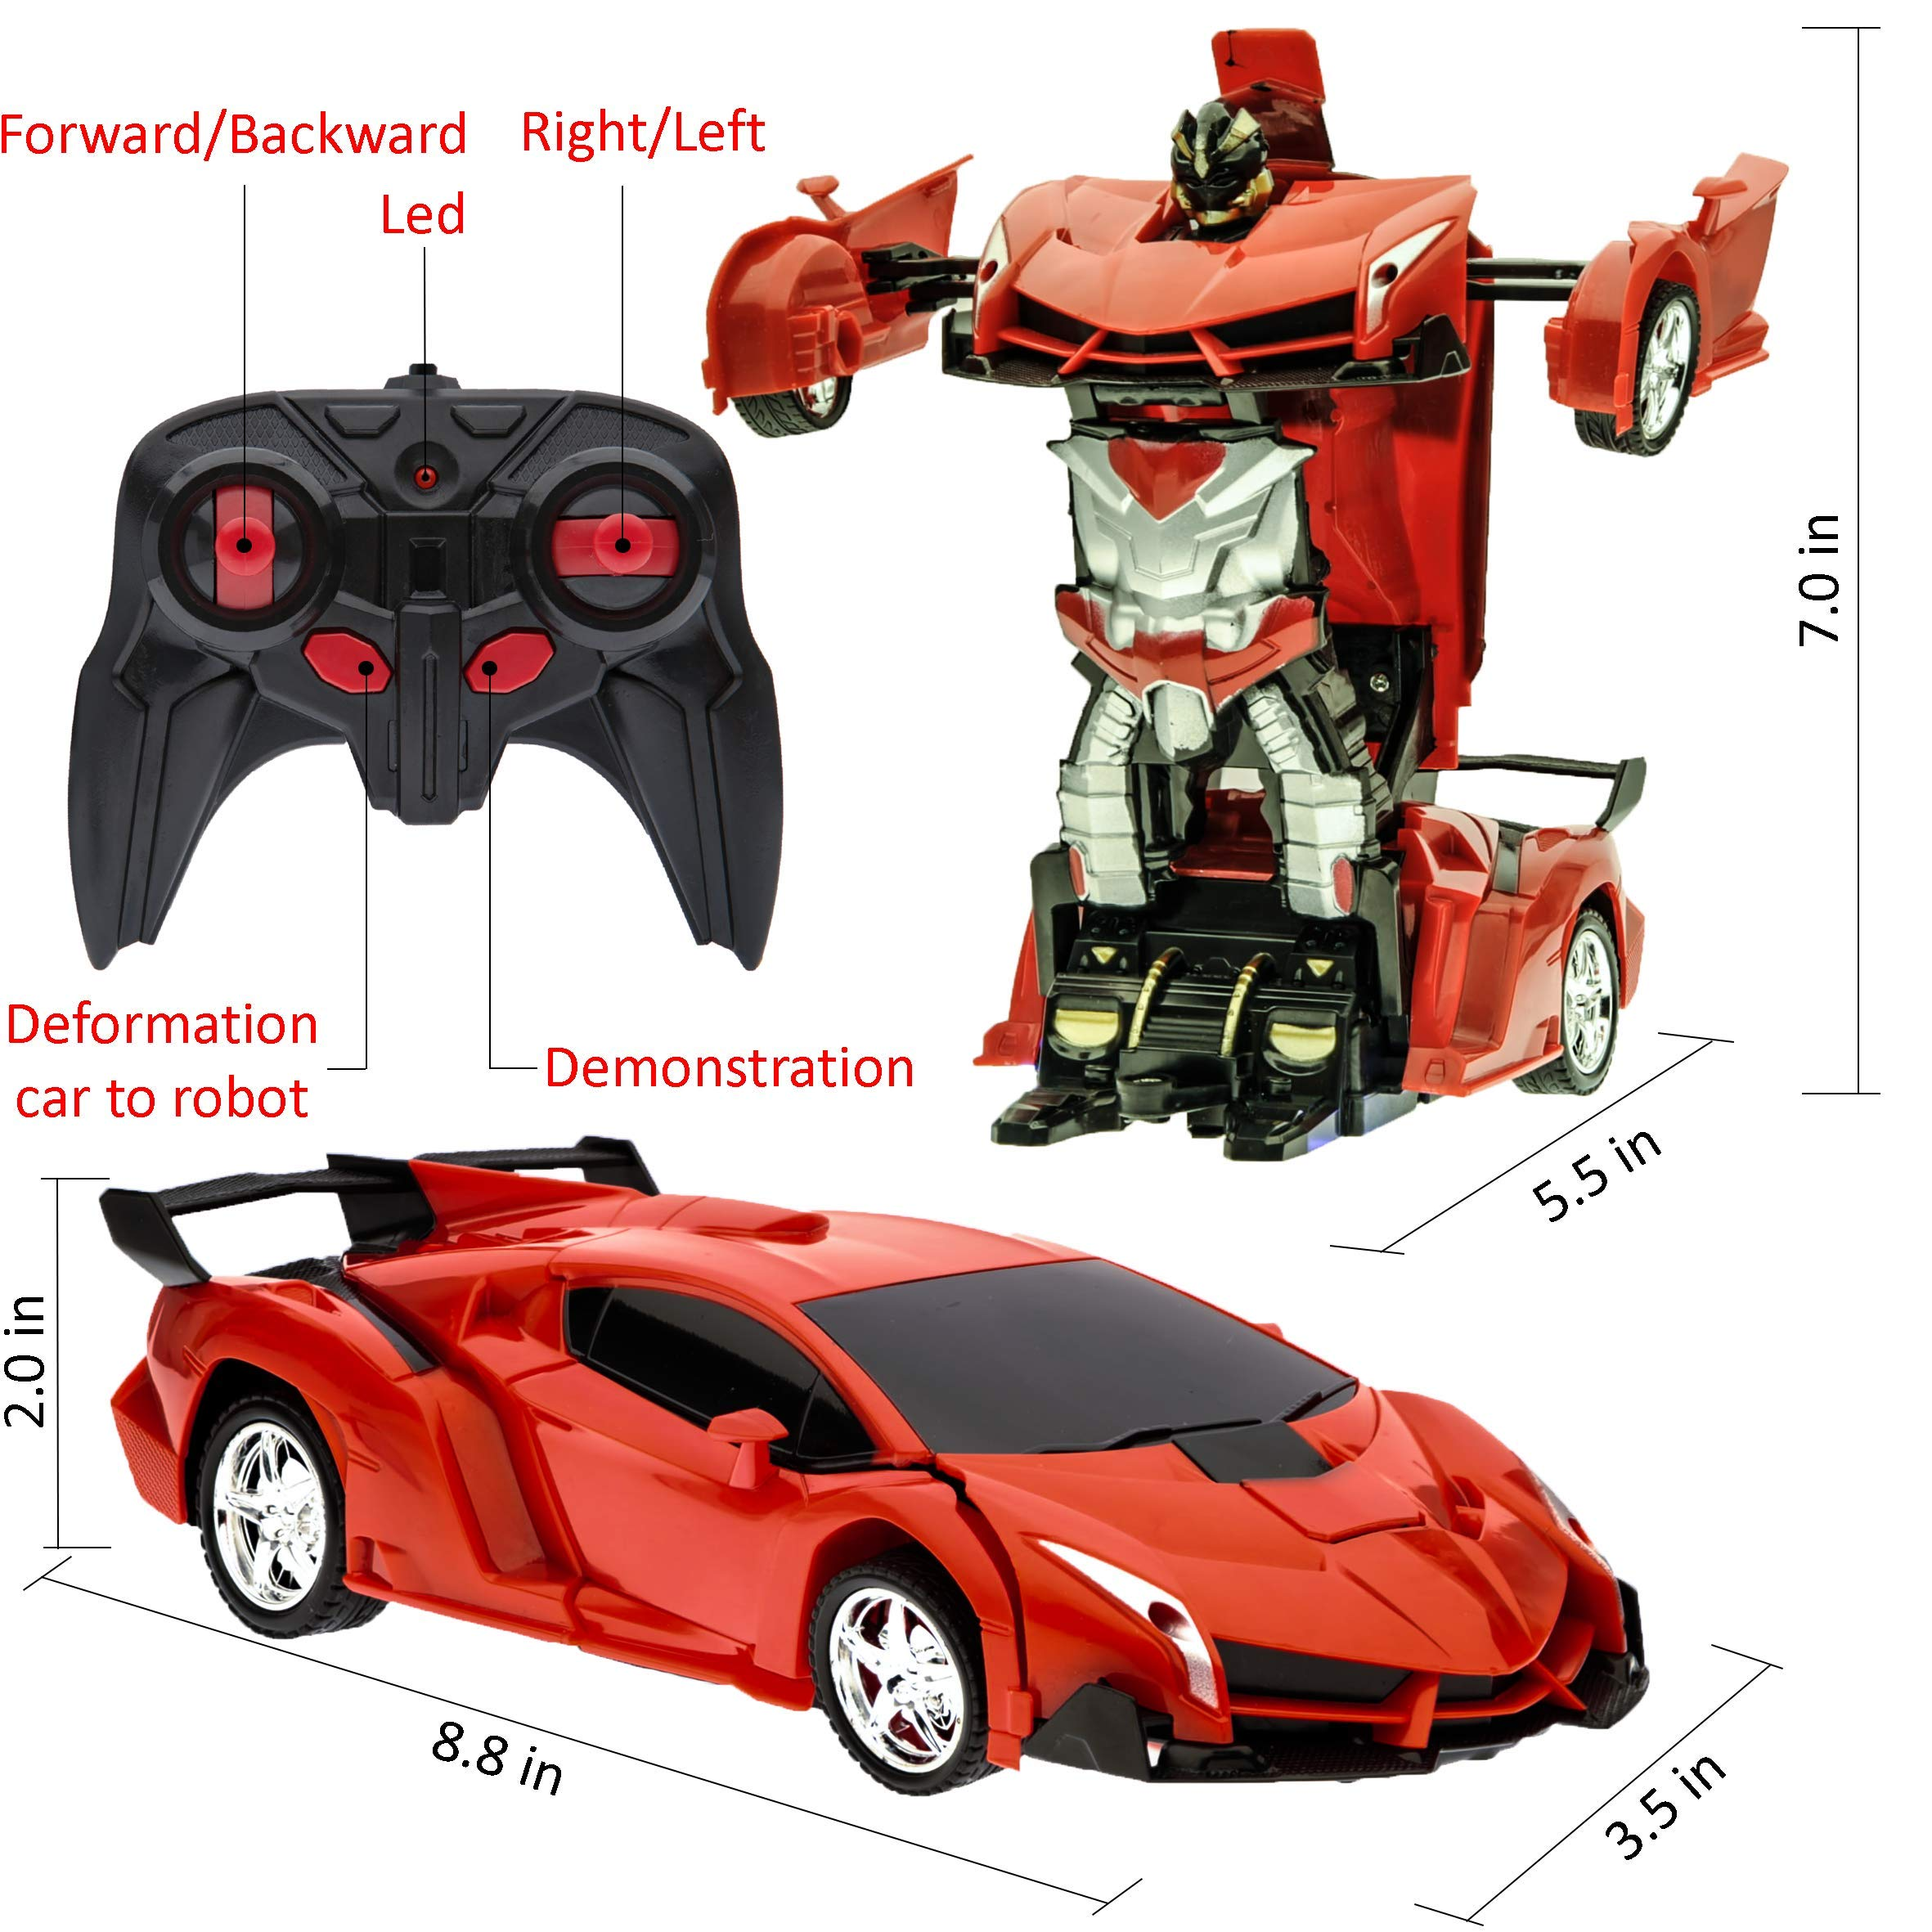 Transformer Car to Robot Toy for Kids Remote Controller Transformation Model One button Deformation to Robot for Boys Children, RC Transform 360° Rotating with LED Speed Drifting 1:18 Scale (Red) by Wessy (Image #2)